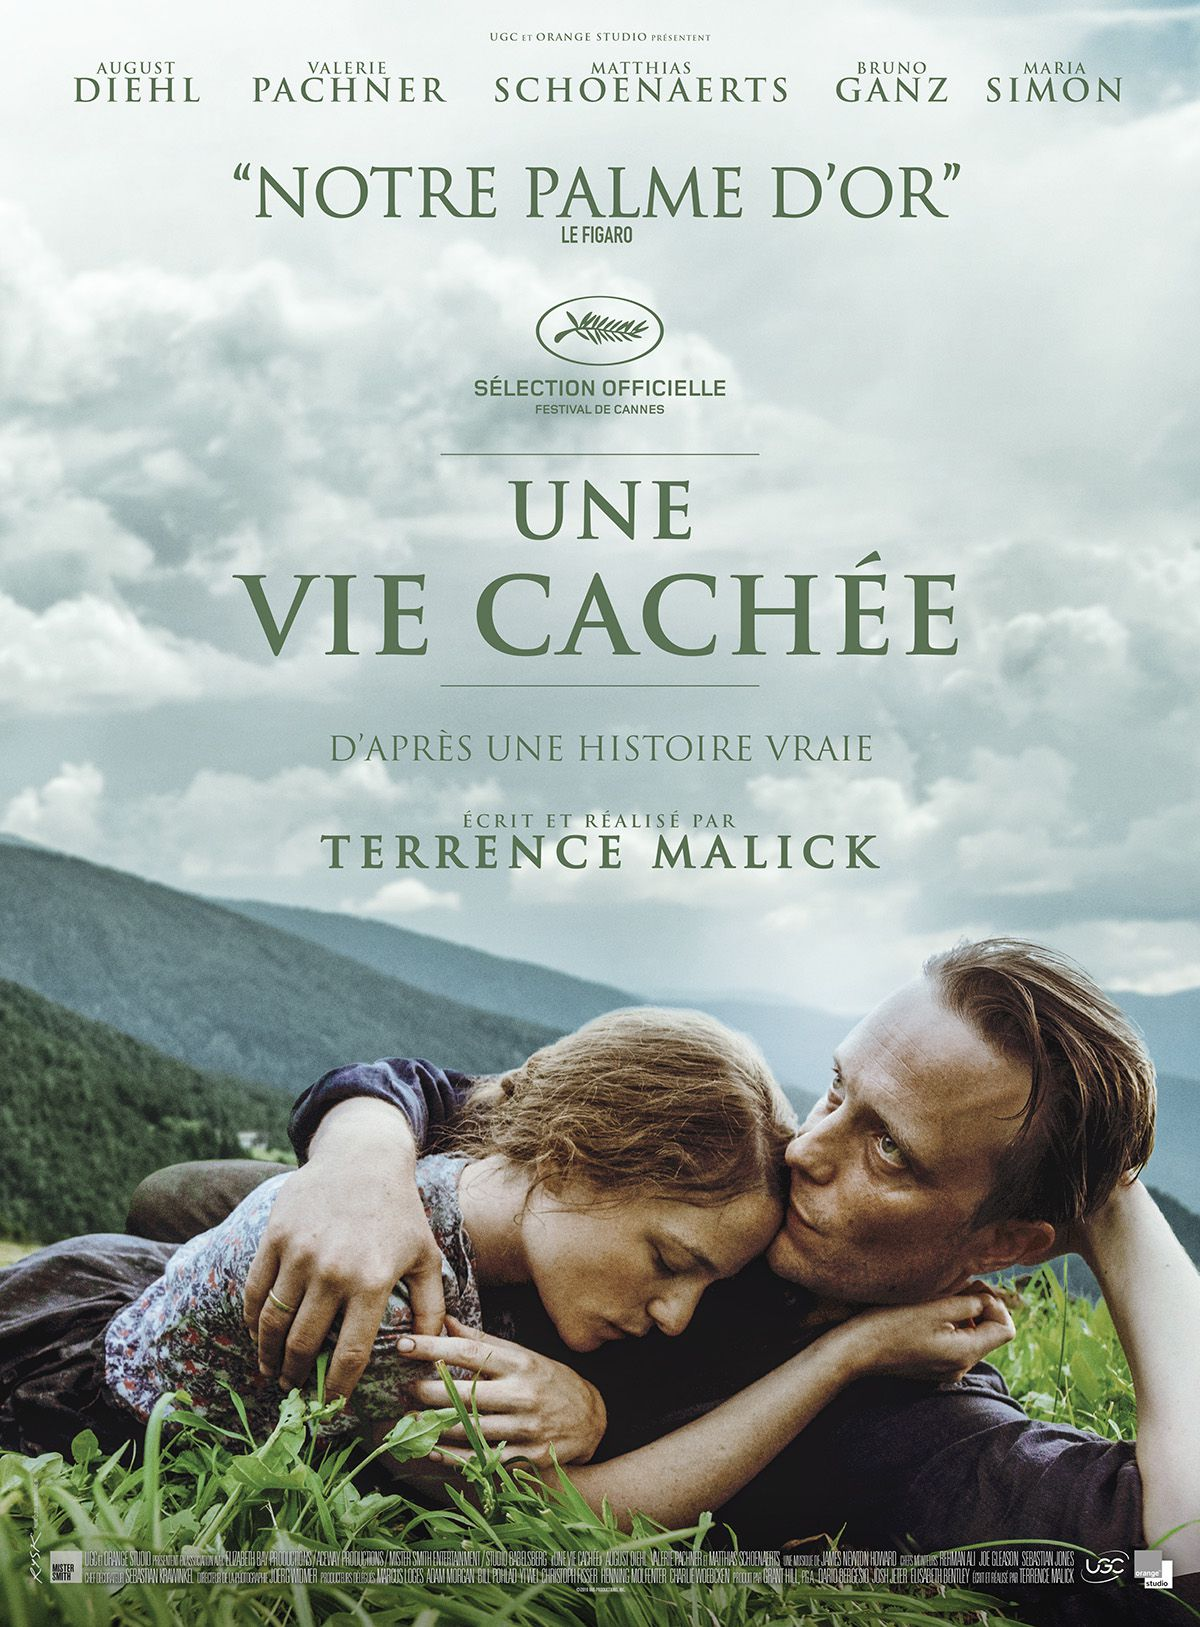 Une vie cachée - Film (2019) streaming VF gratuit complet